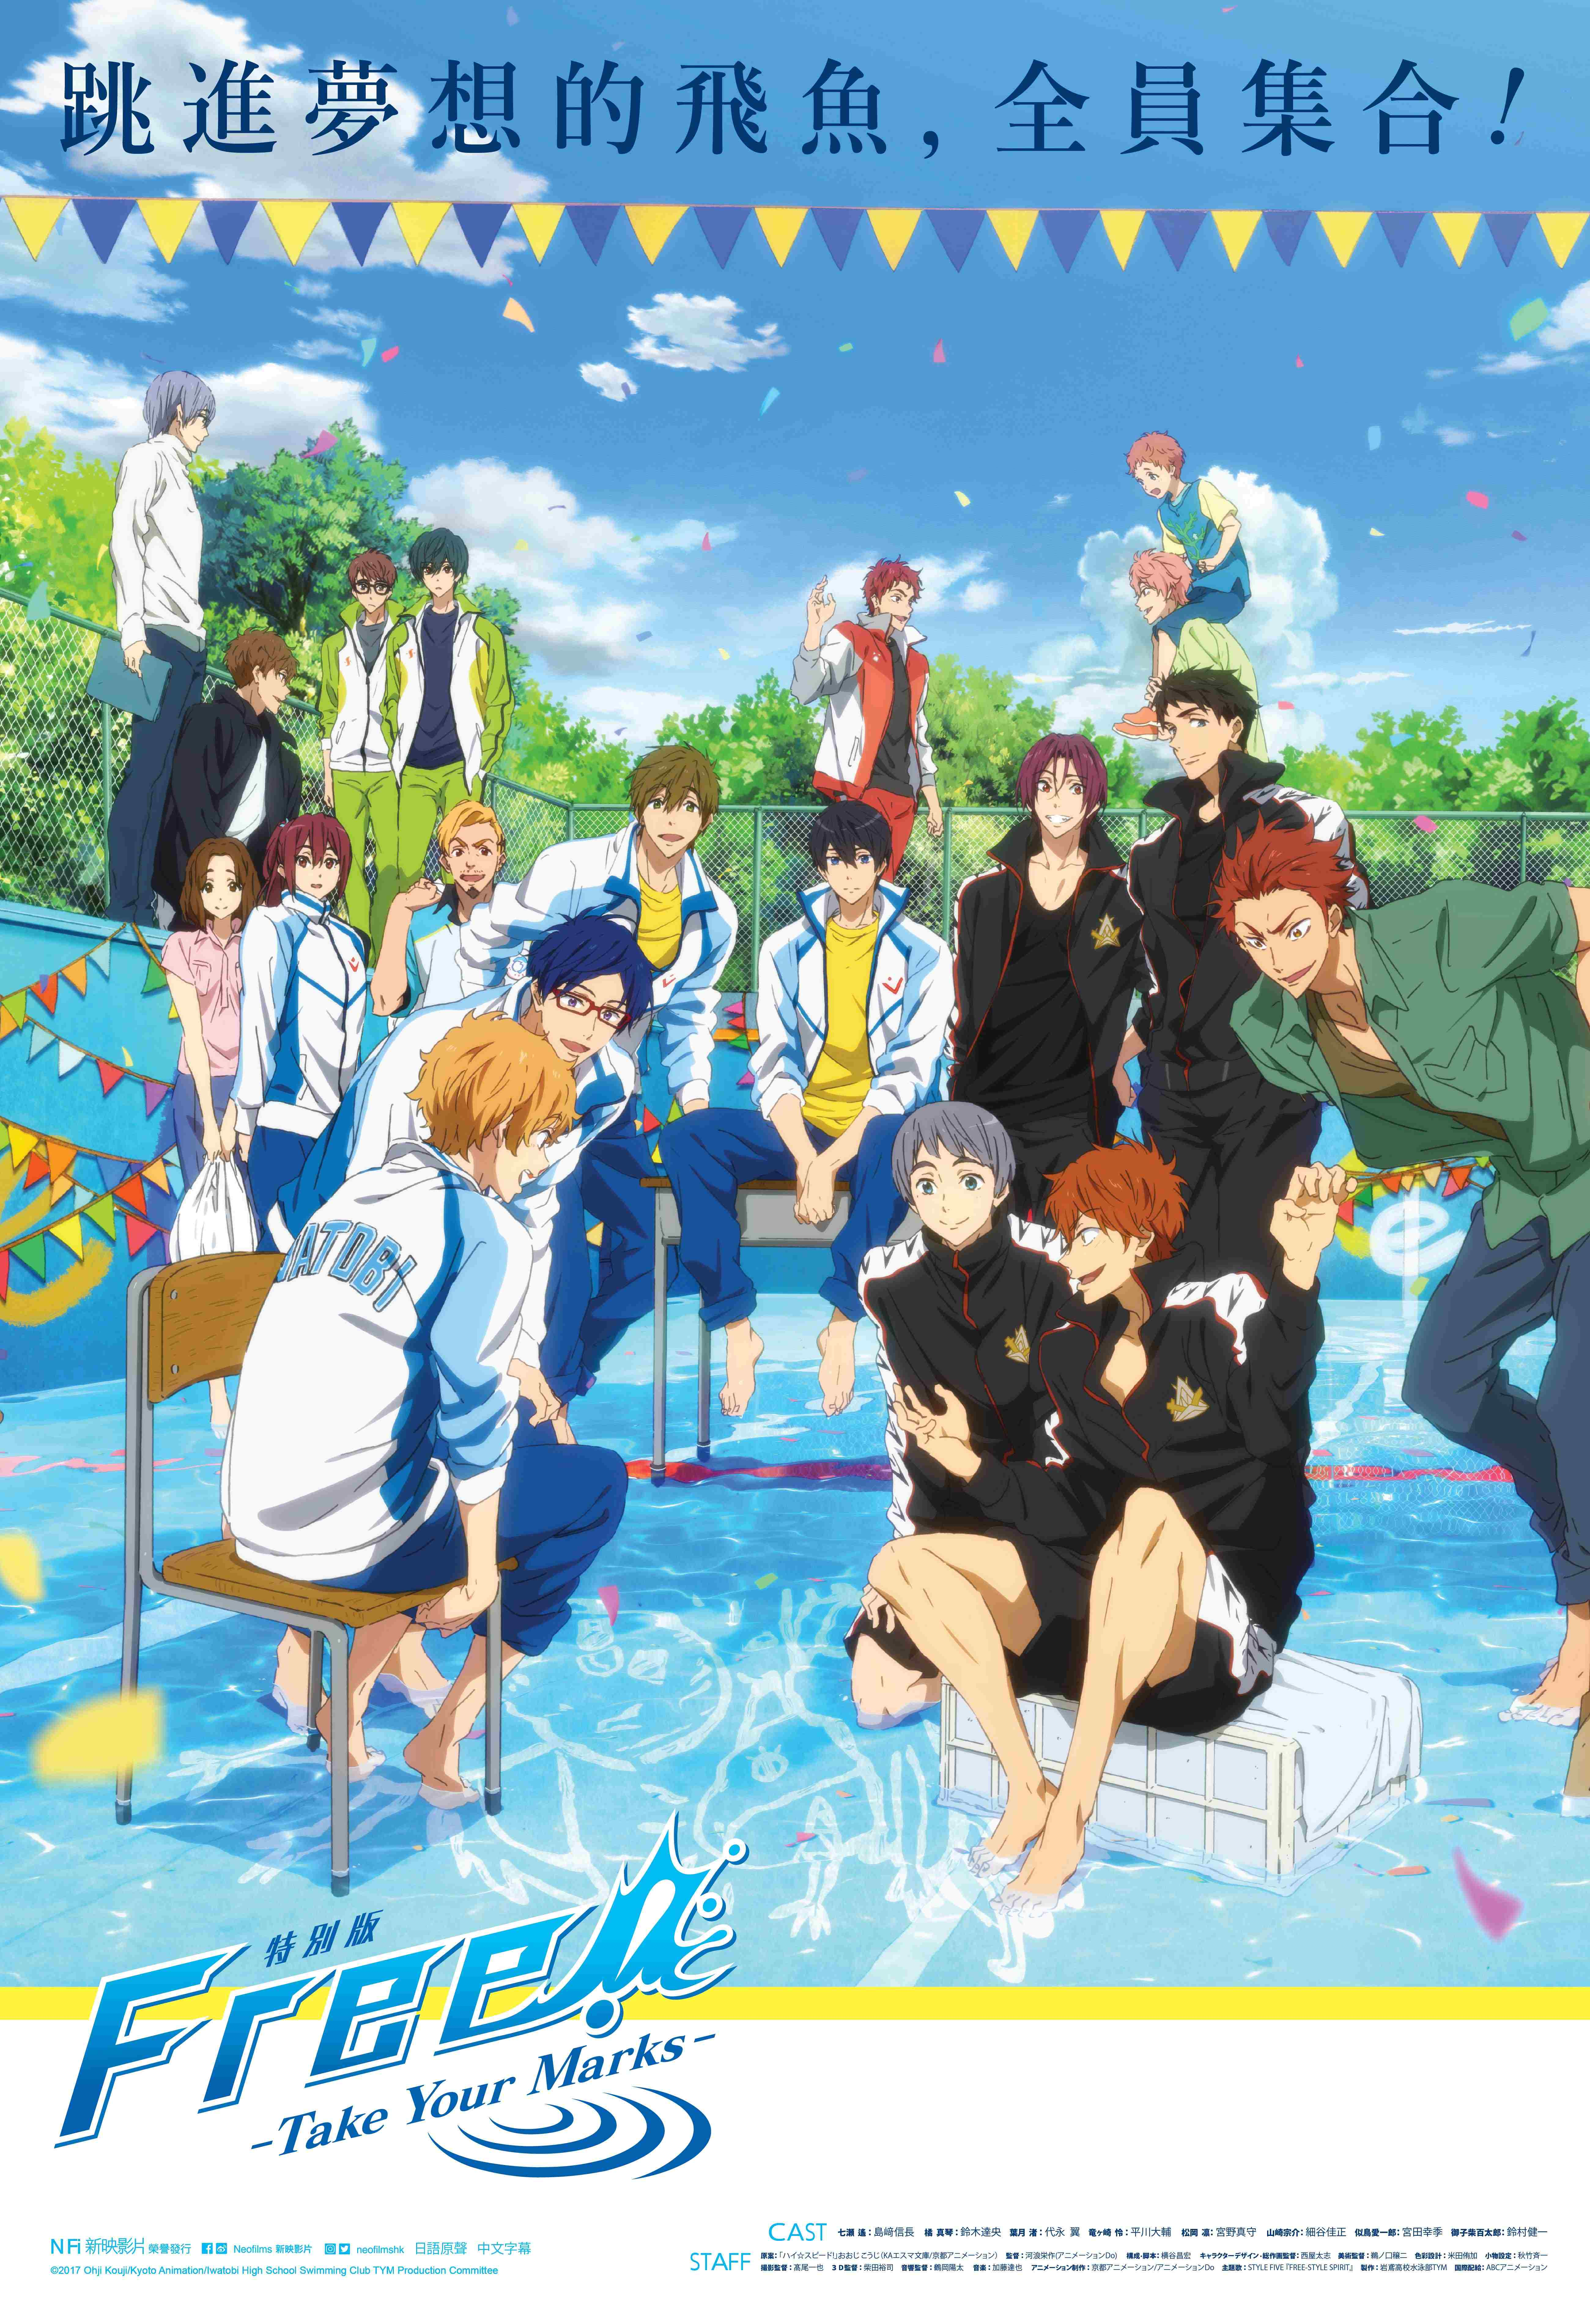 Free! -Take Your Marks- poster